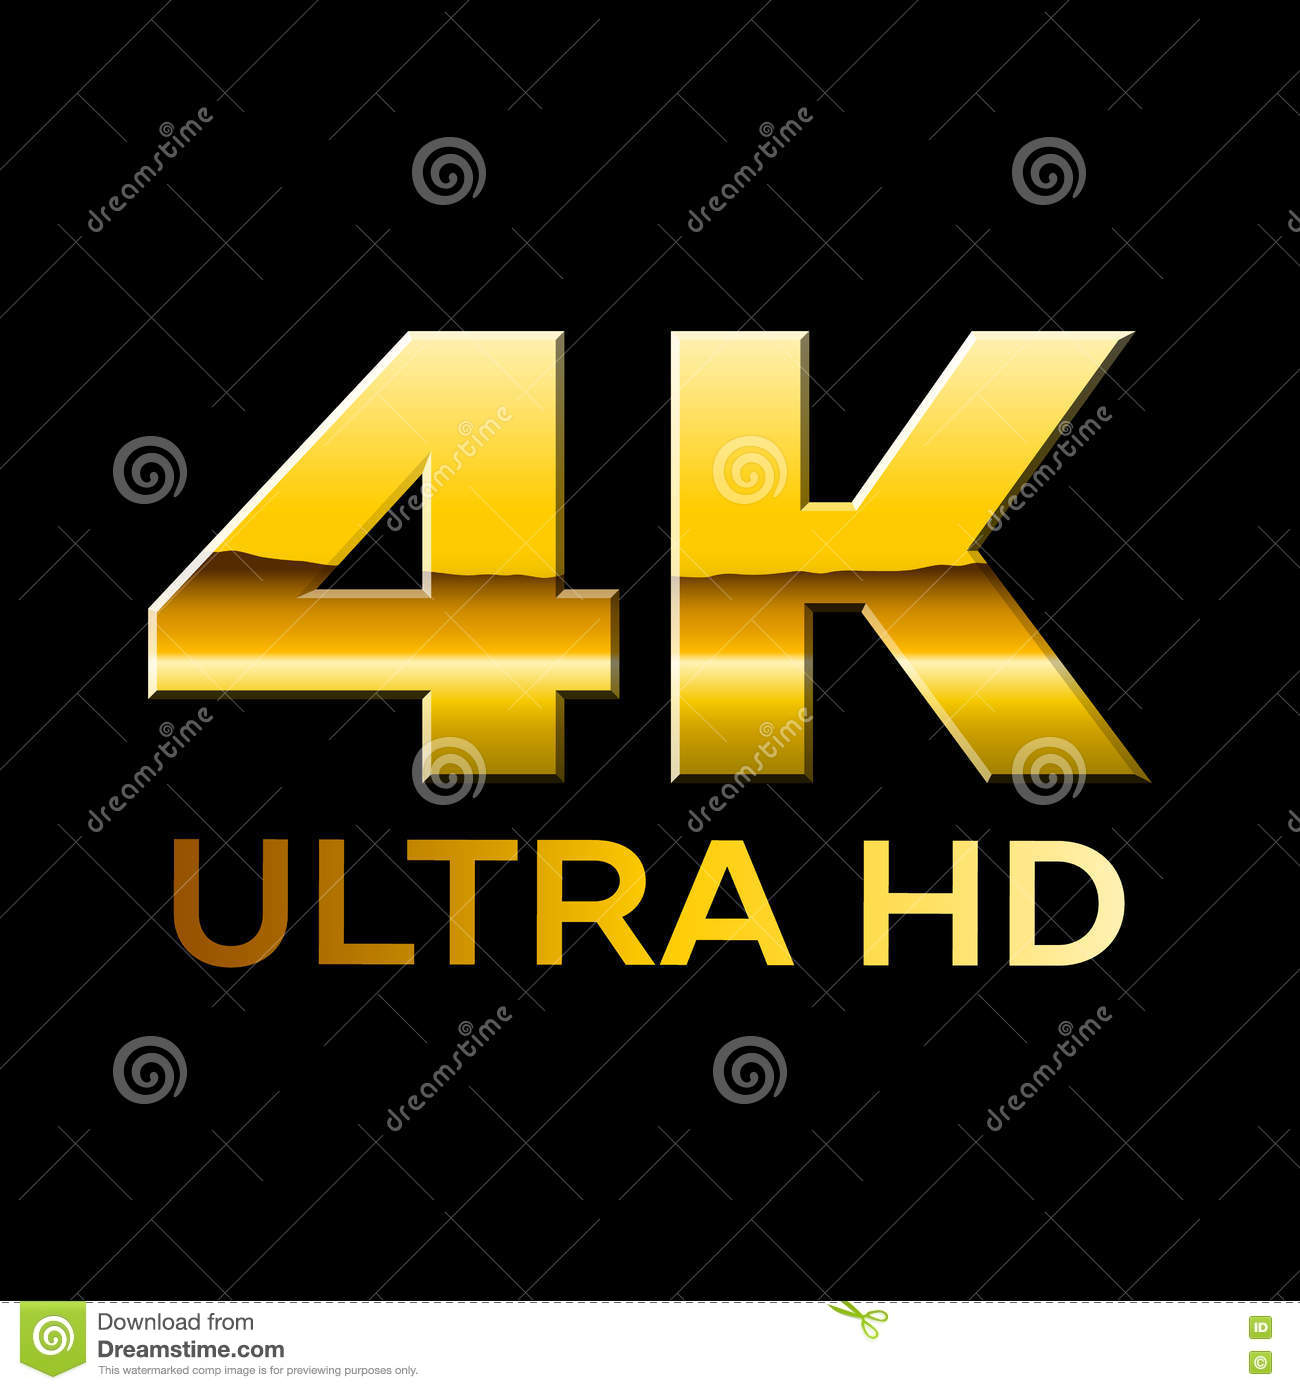 4k ultra hd format logo with shiny chrome letters stock vector download 4k ultra hd format logo with shiny chrome letters stock vector illustration of hdtv thecheapjerseys Image collections